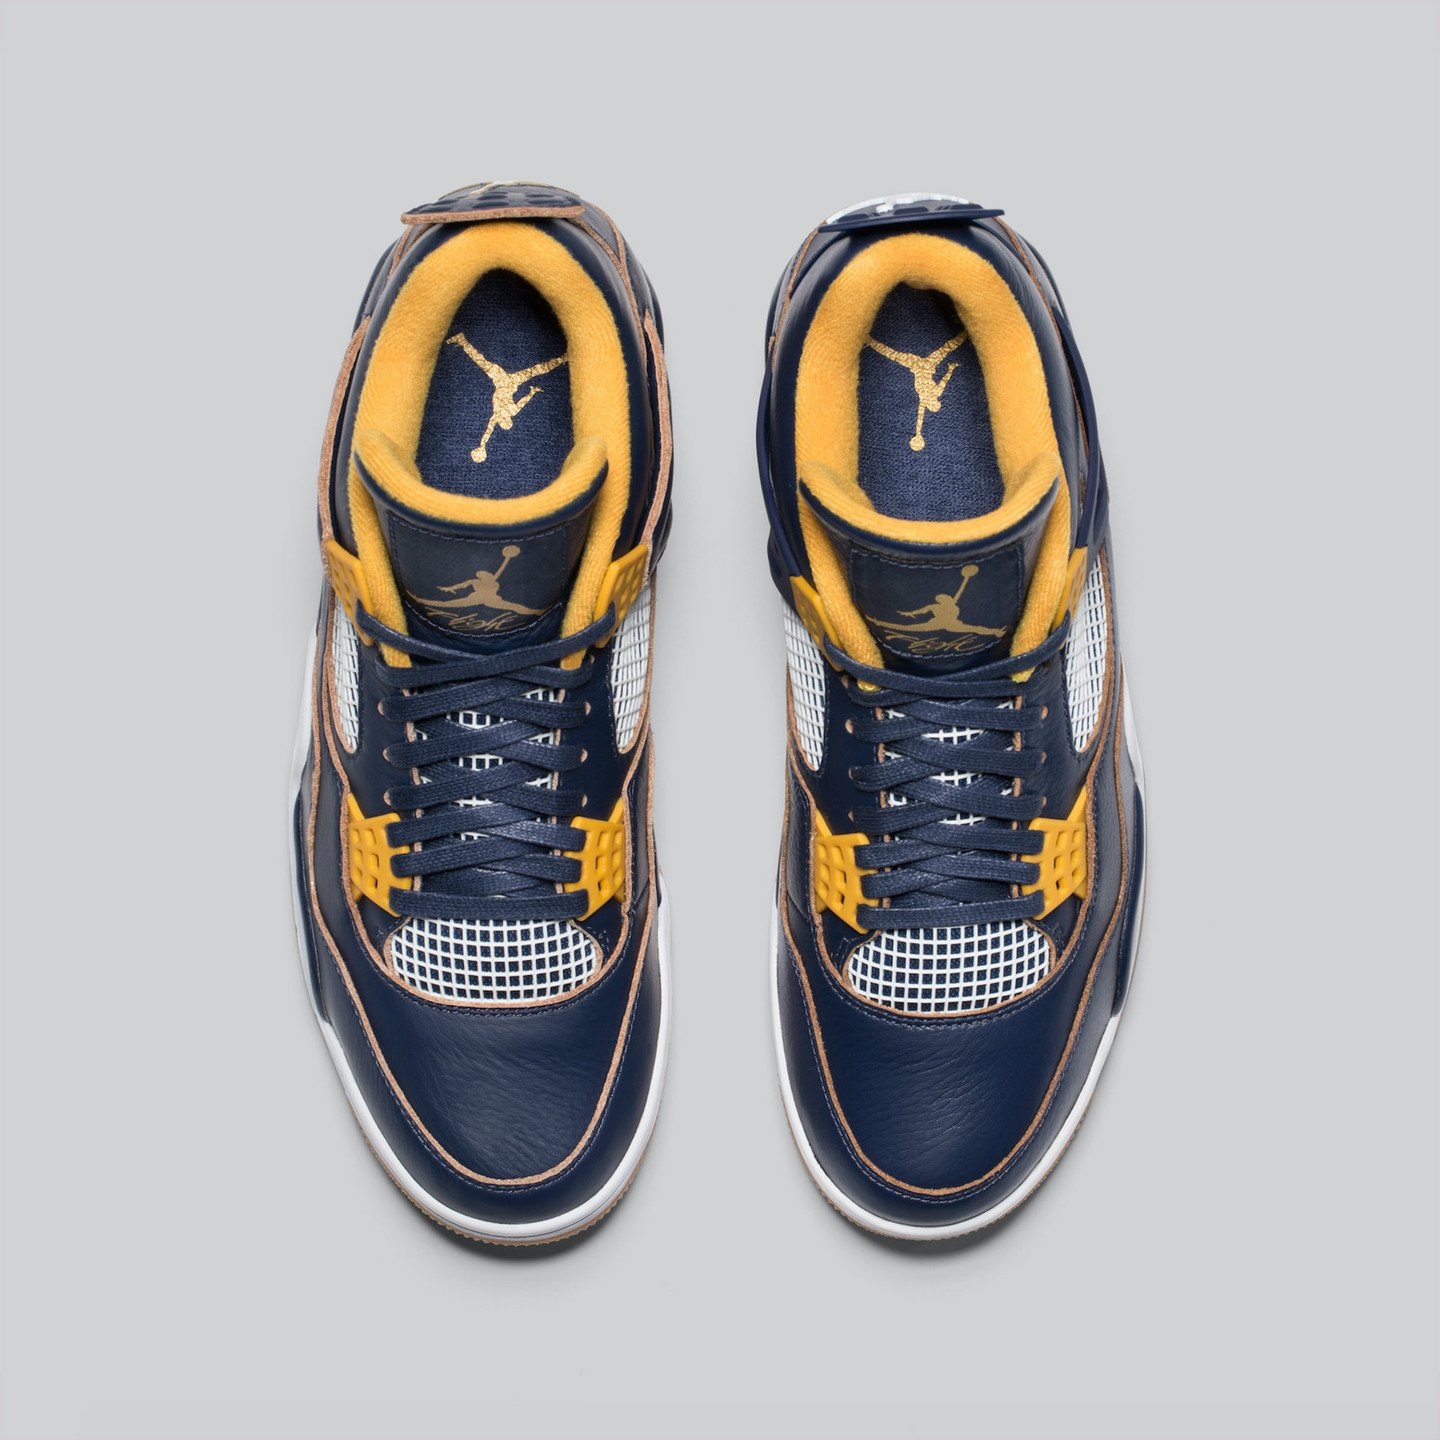 Jordan Air Jordan 4 Retro 'Dunk From Above' Midnight Navy / Golden Yellow / White 308497-425-43